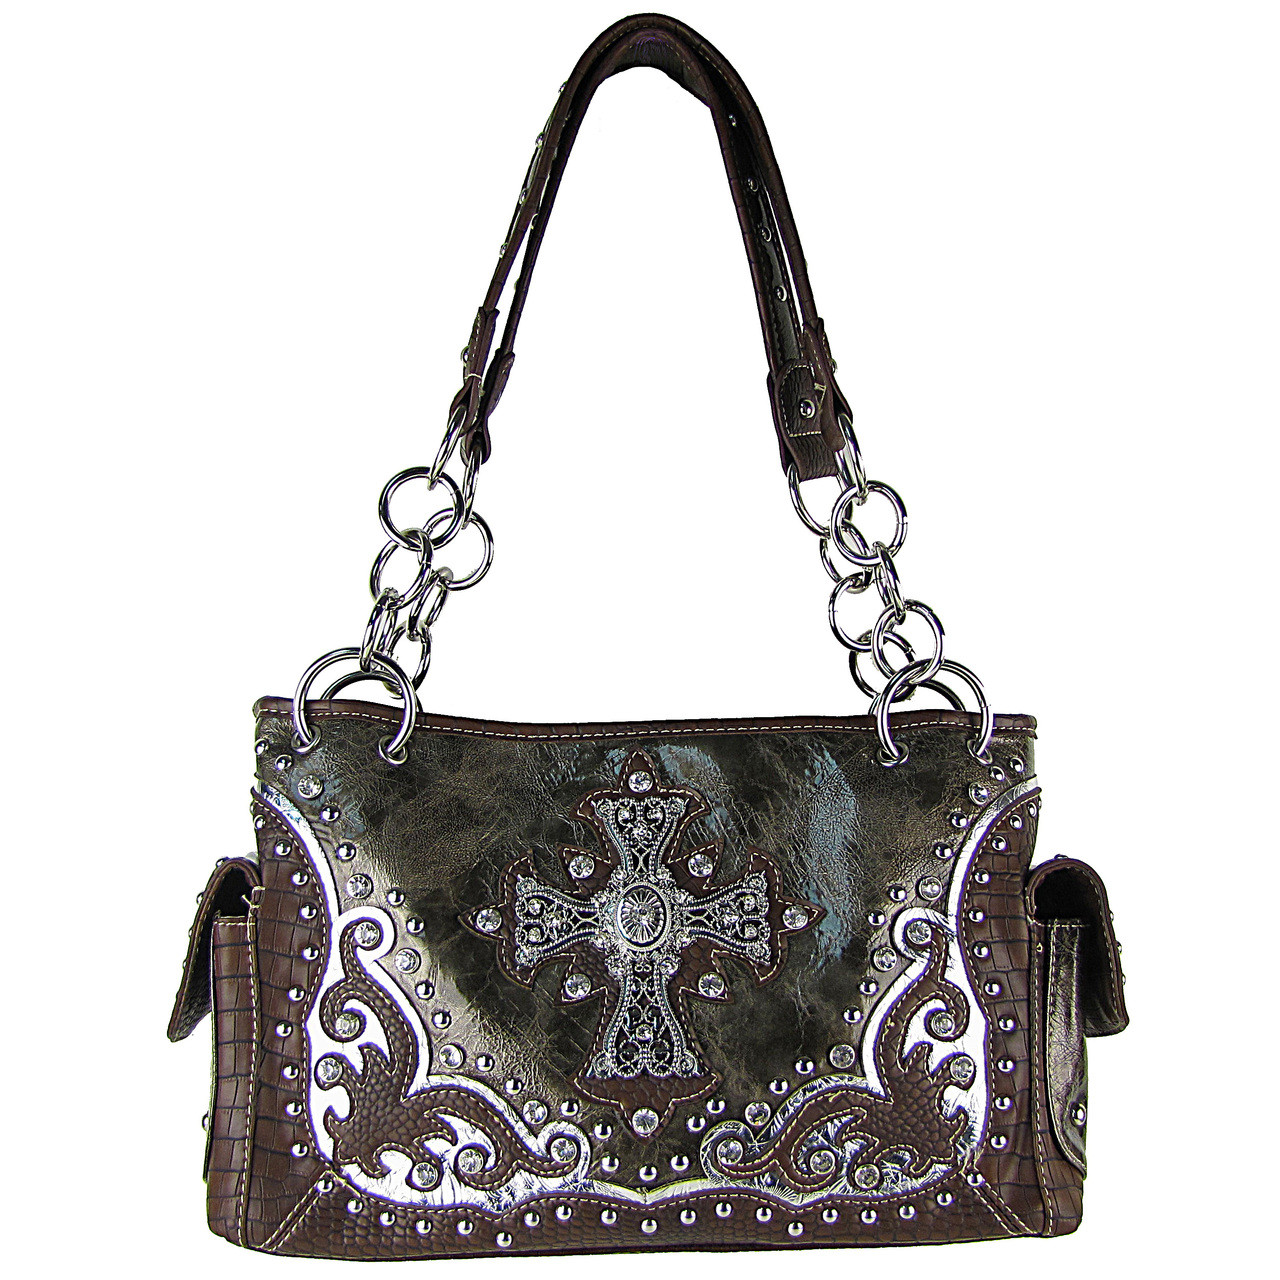 GRAY WESTERN STUDDED RHINESTONE CROSS SHOULDER HANDBAG HB1-CHF0032GRY